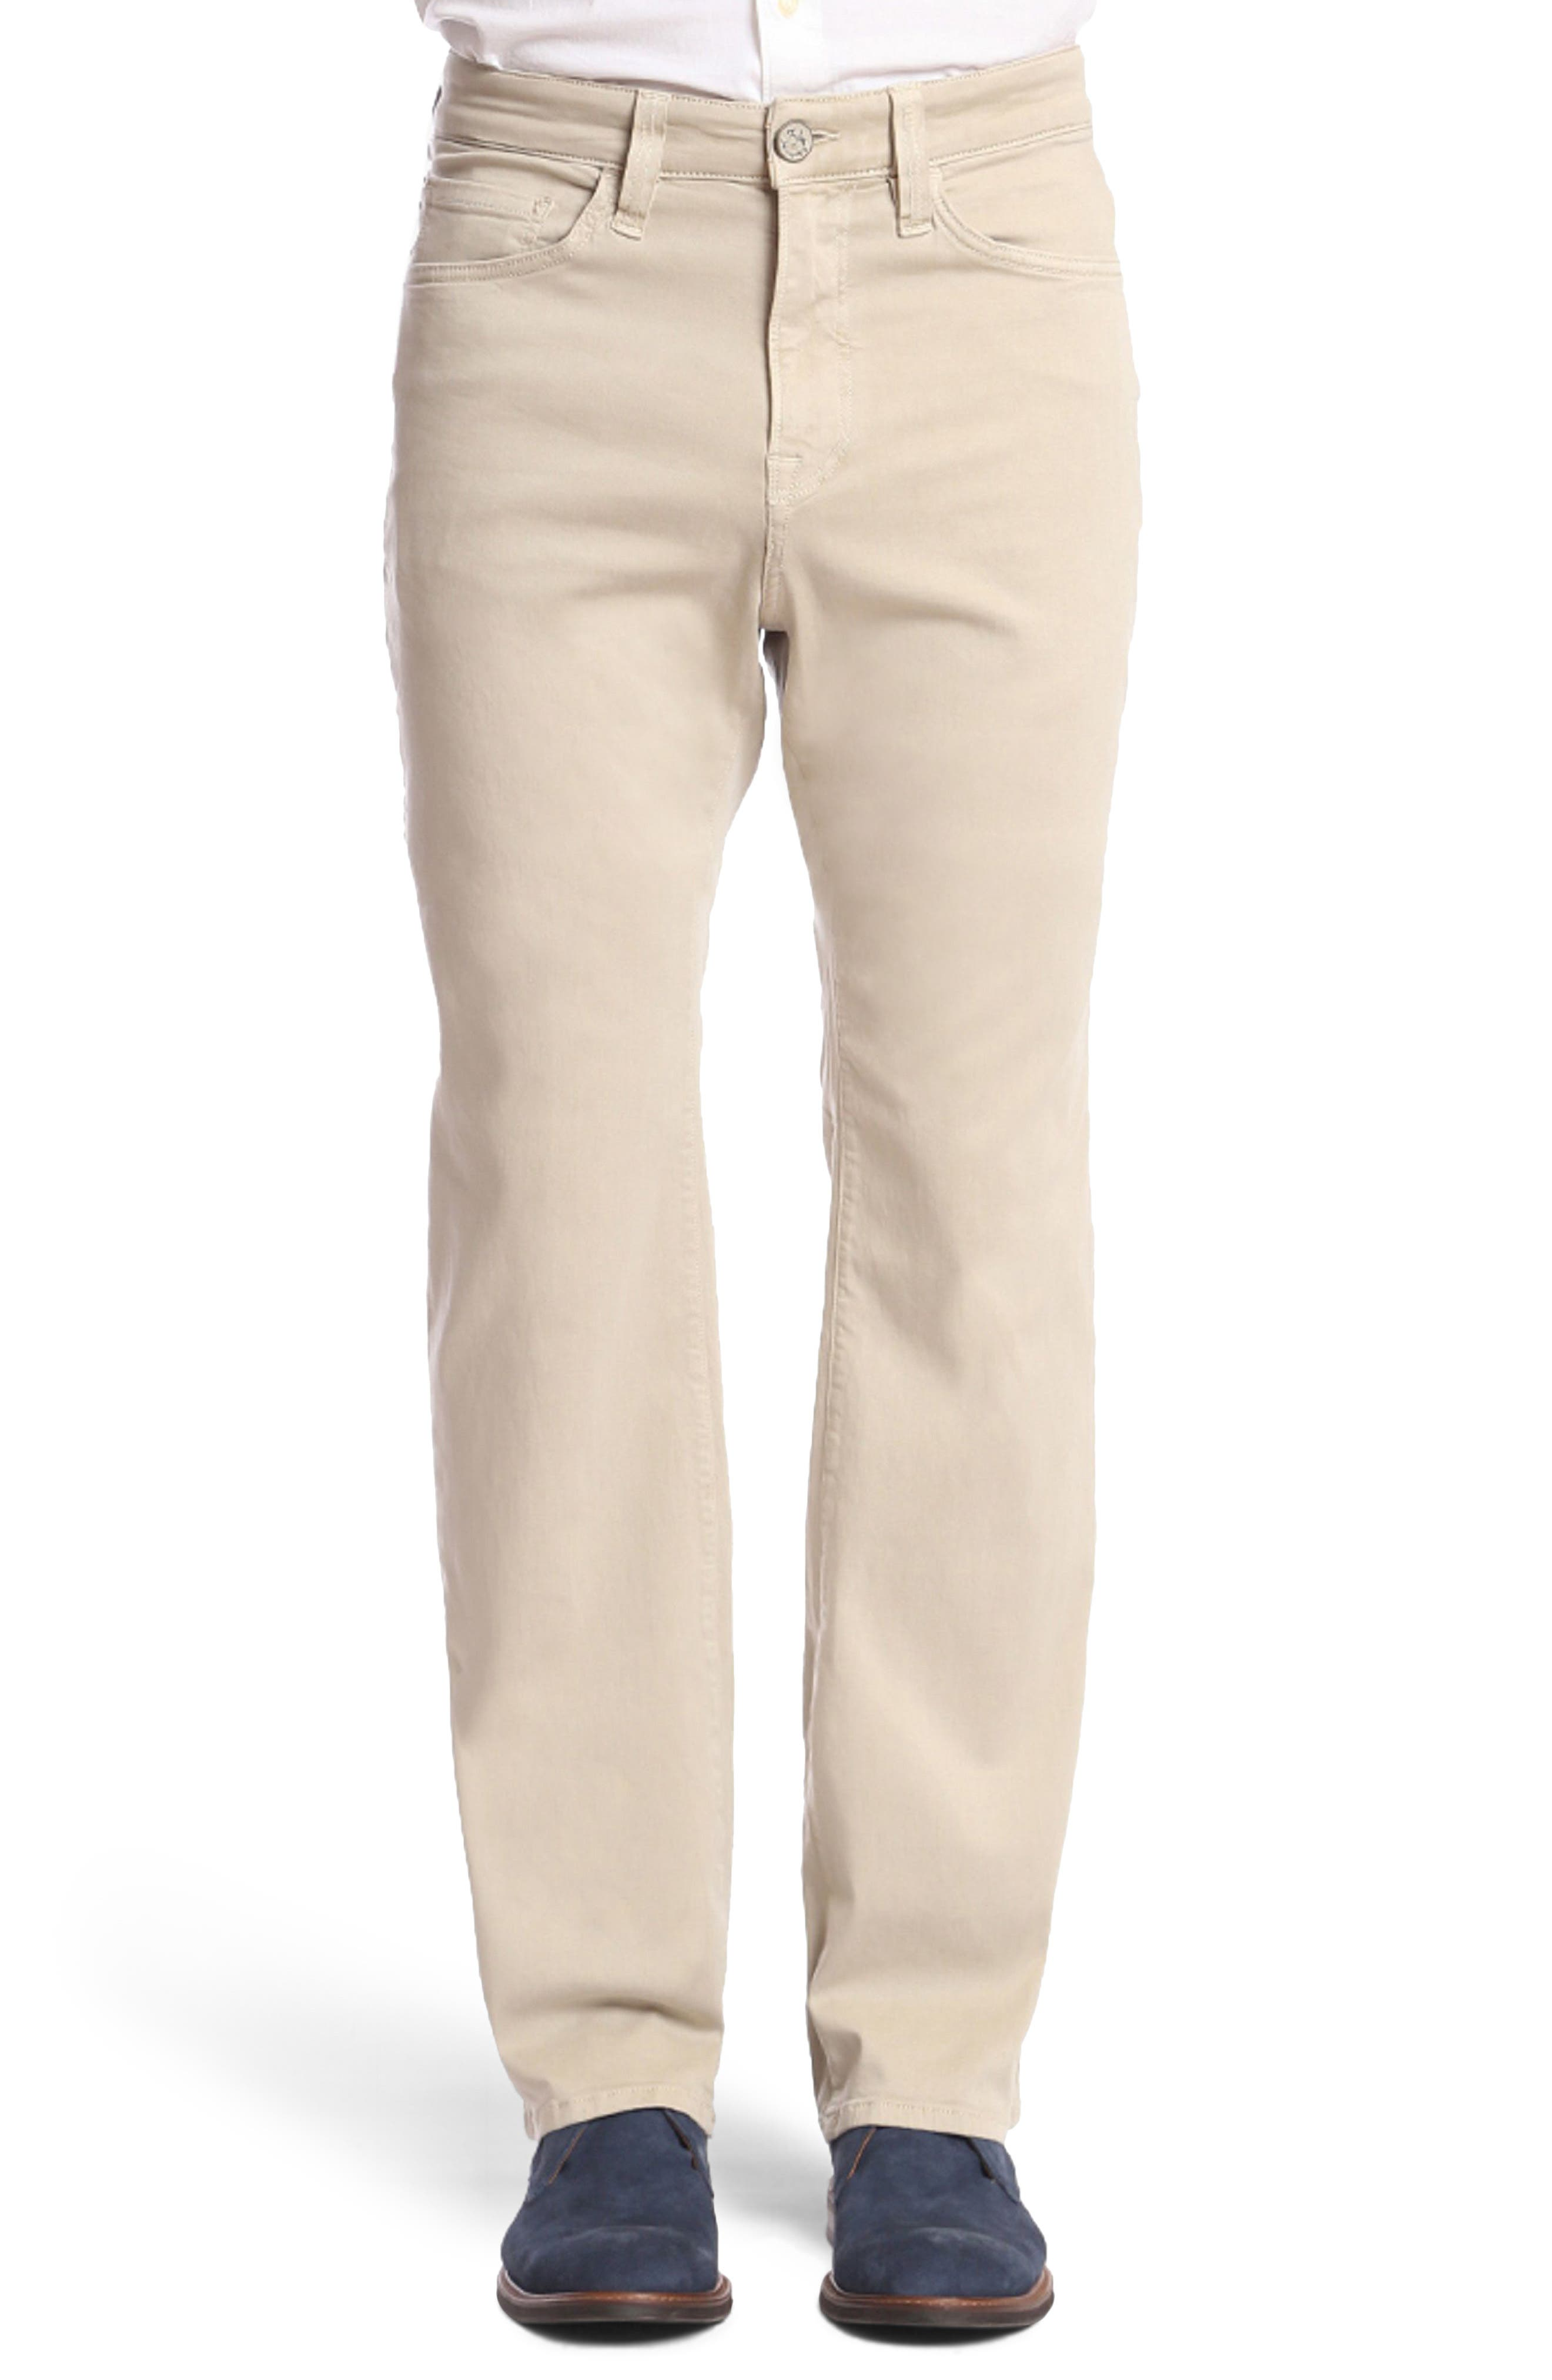 Charisma Relaxed Fit Jeans,                         Main,                         color, STONE TWILL